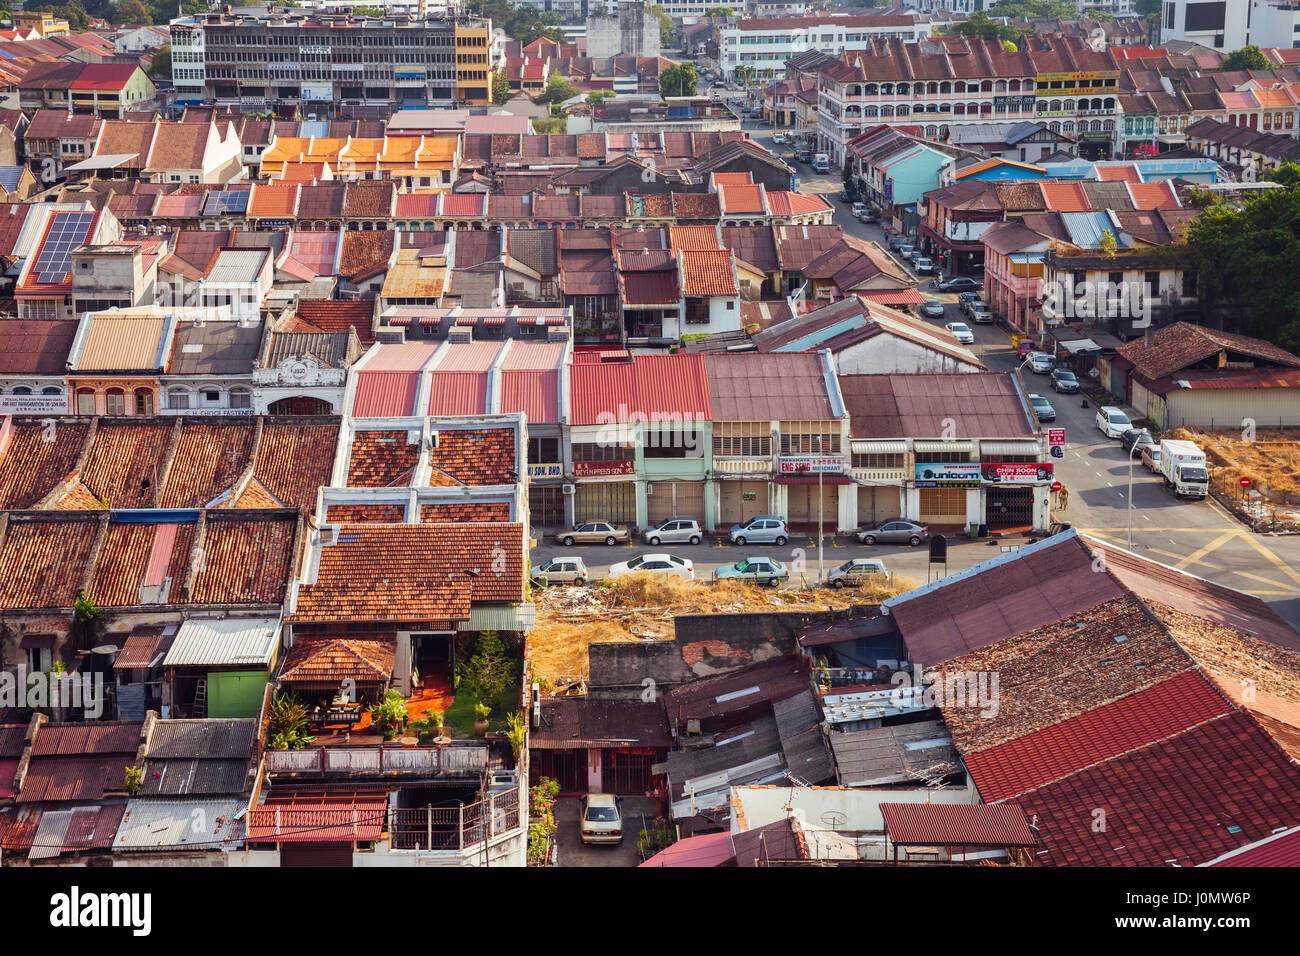 Georgetown, Malaysia - March 27, 2016: Panoramic view over historical part of the Georgetown on March 27, 2016 in - Stock Image